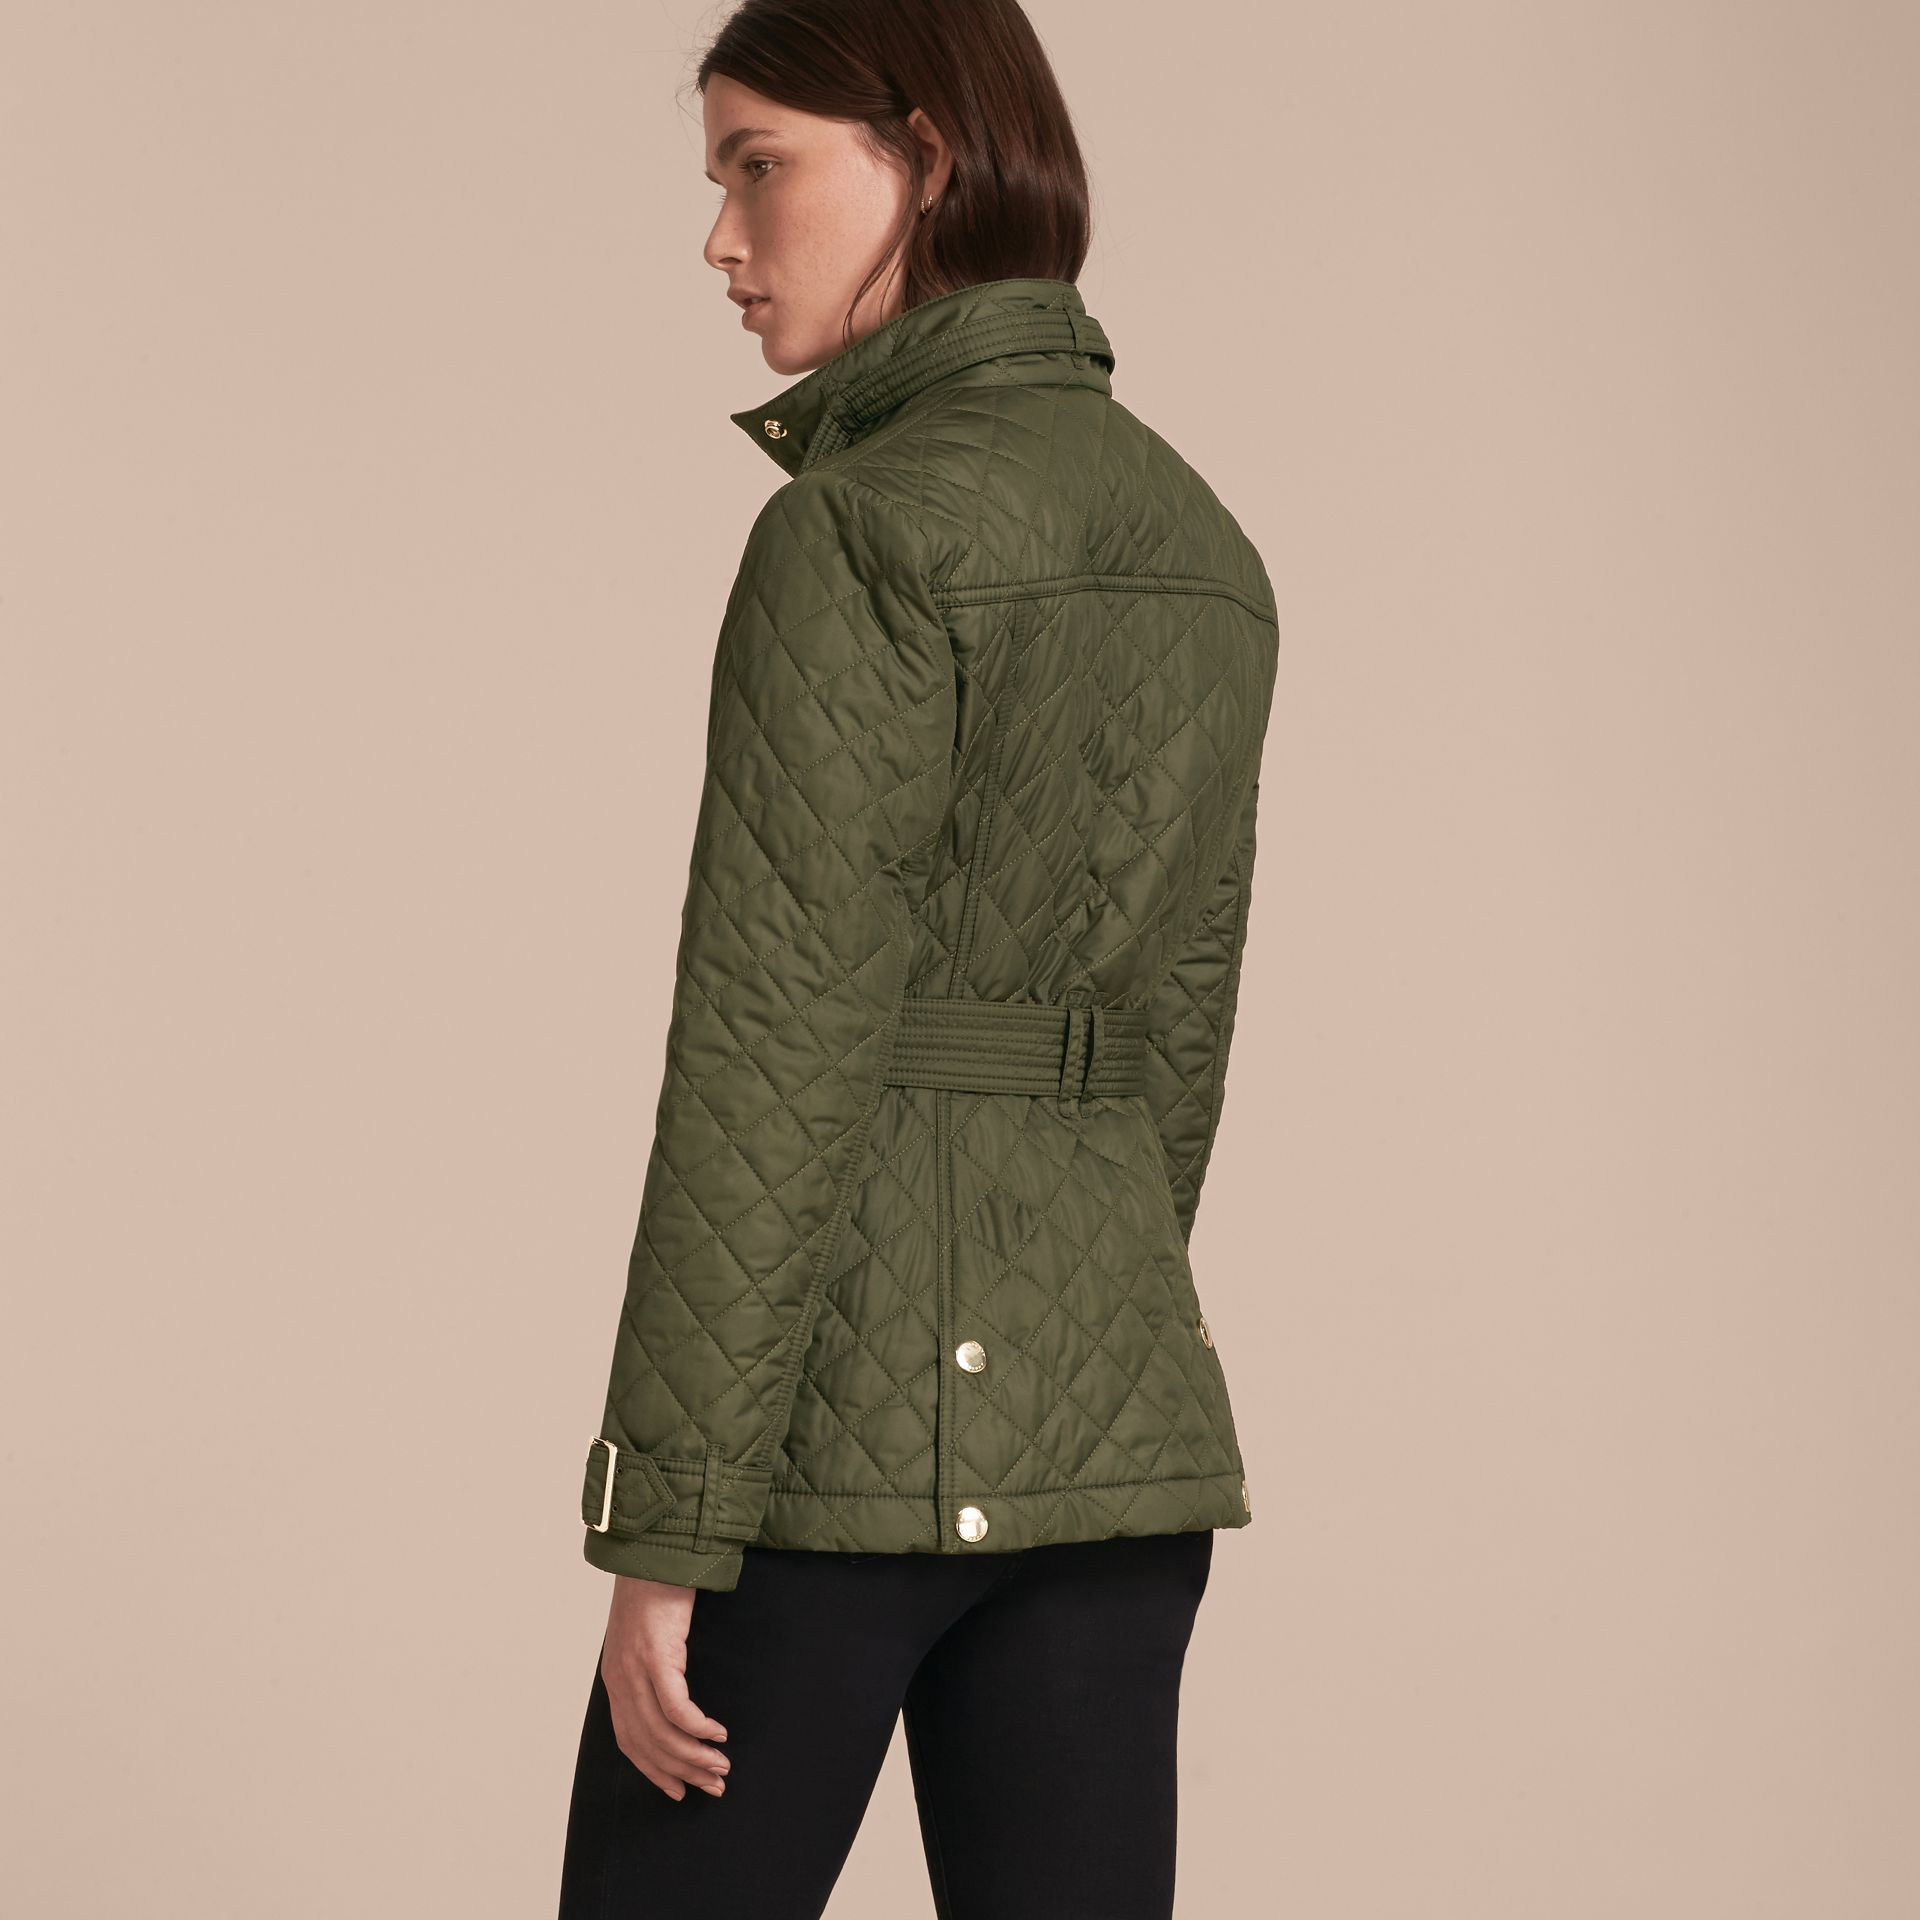 Military green Buckle Detail Technical Field Jacket Military Green - gallery image 3